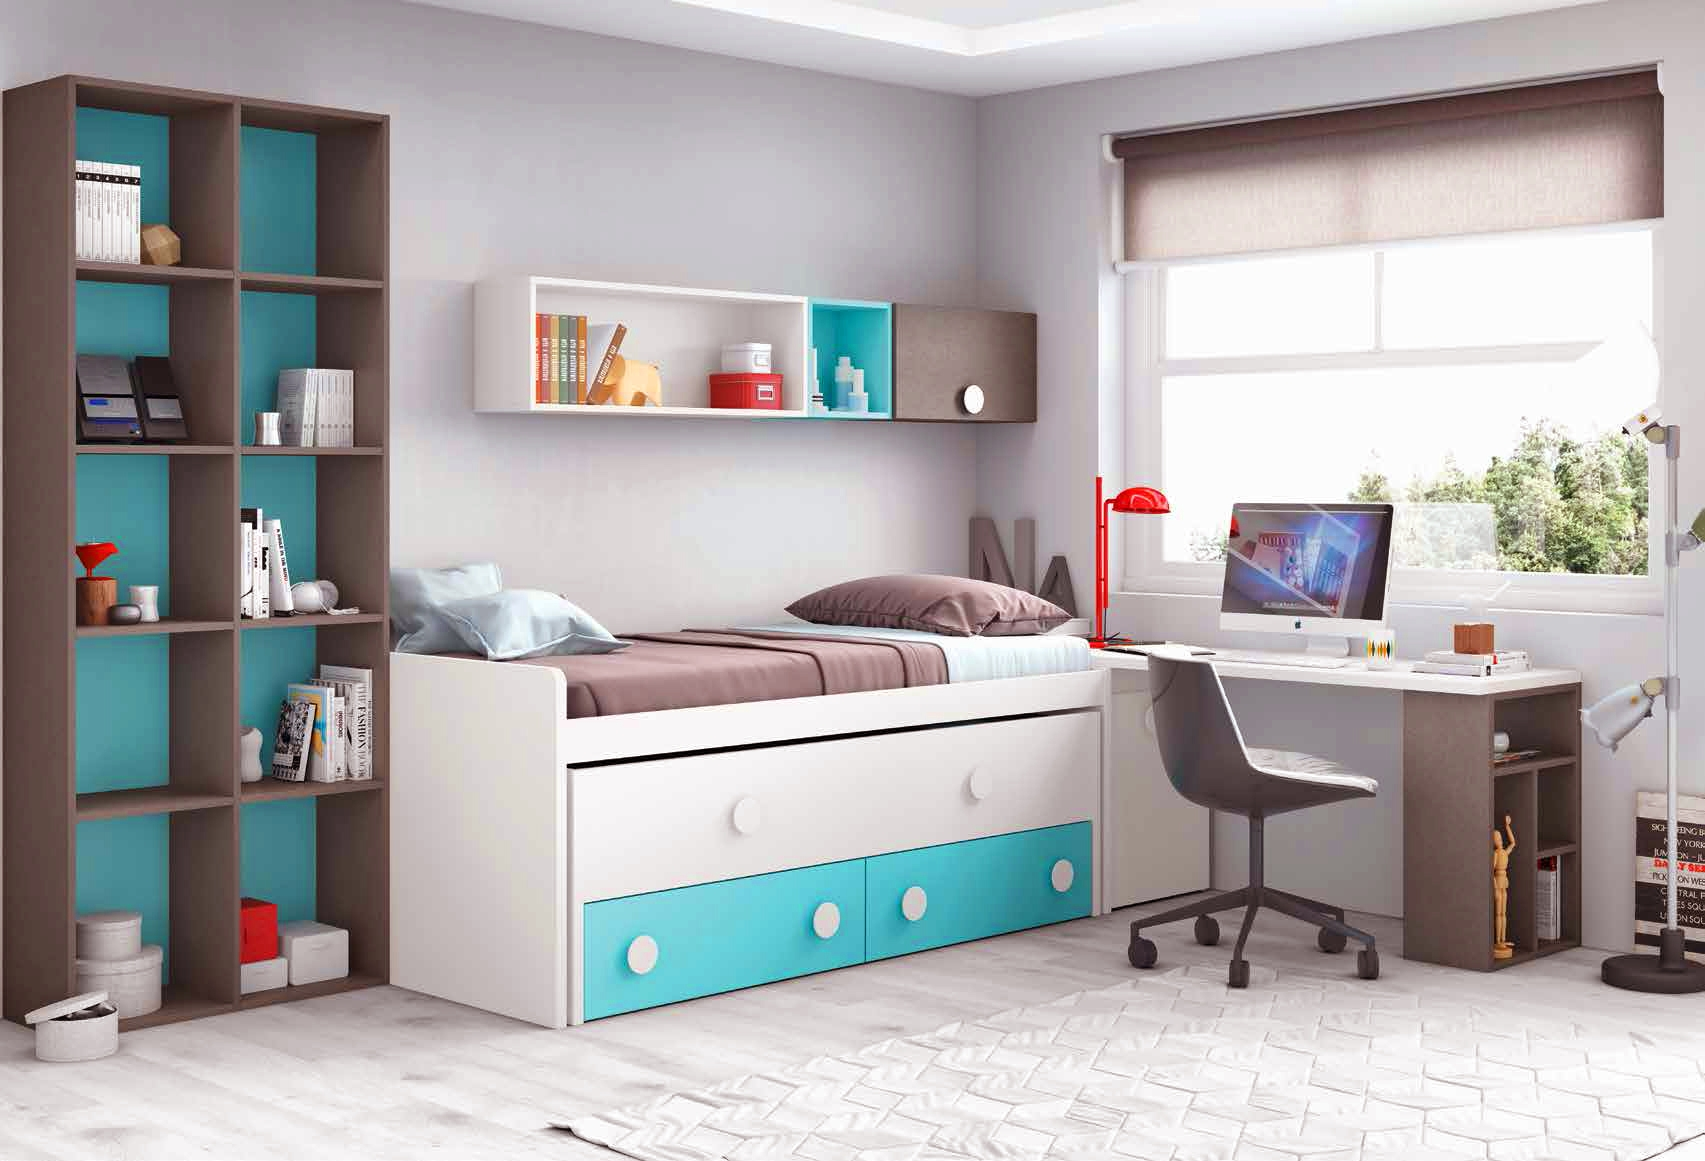 chambre compl te enfant avec lit biblioth que glicerio. Black Bedroom Furniture Sets. Home Design Ideas